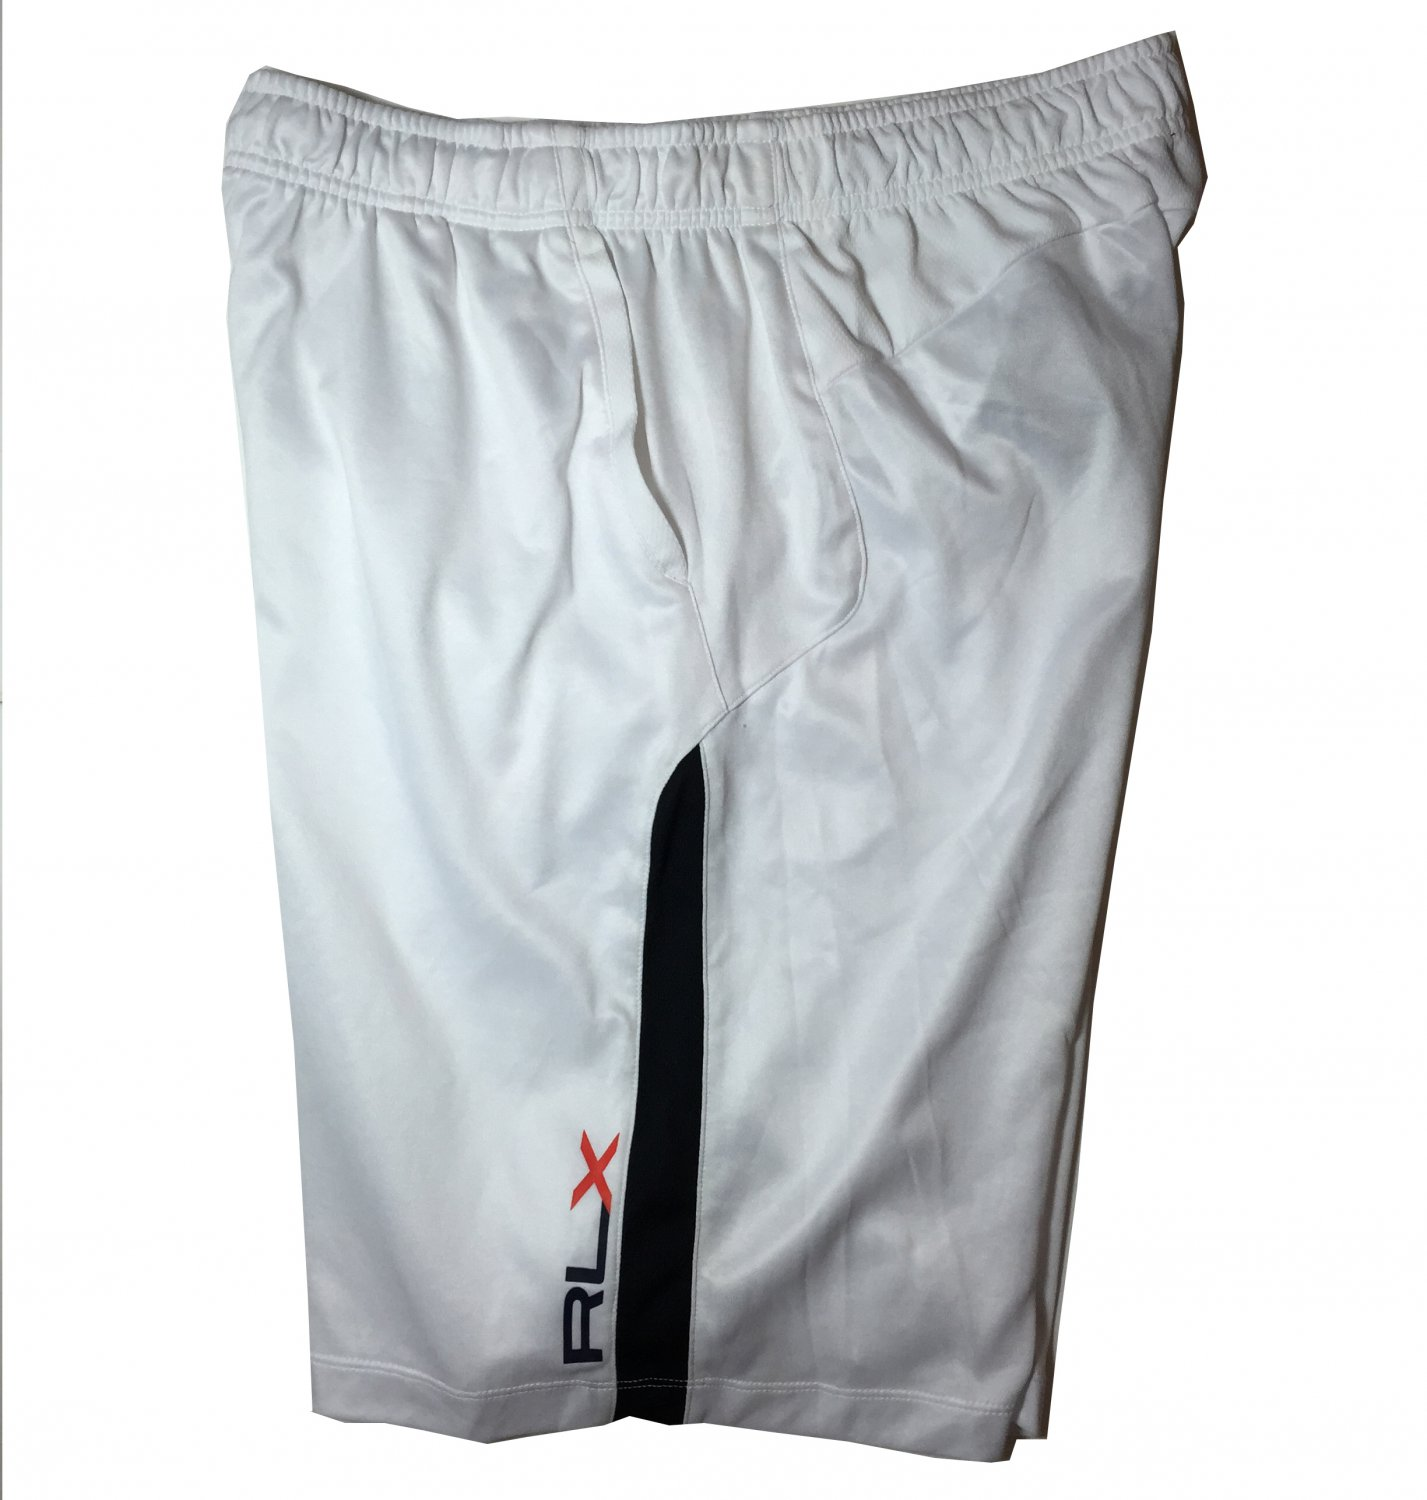 Men's XL RLX Polo Ralph Lauren White Active Basketball Running Shorts